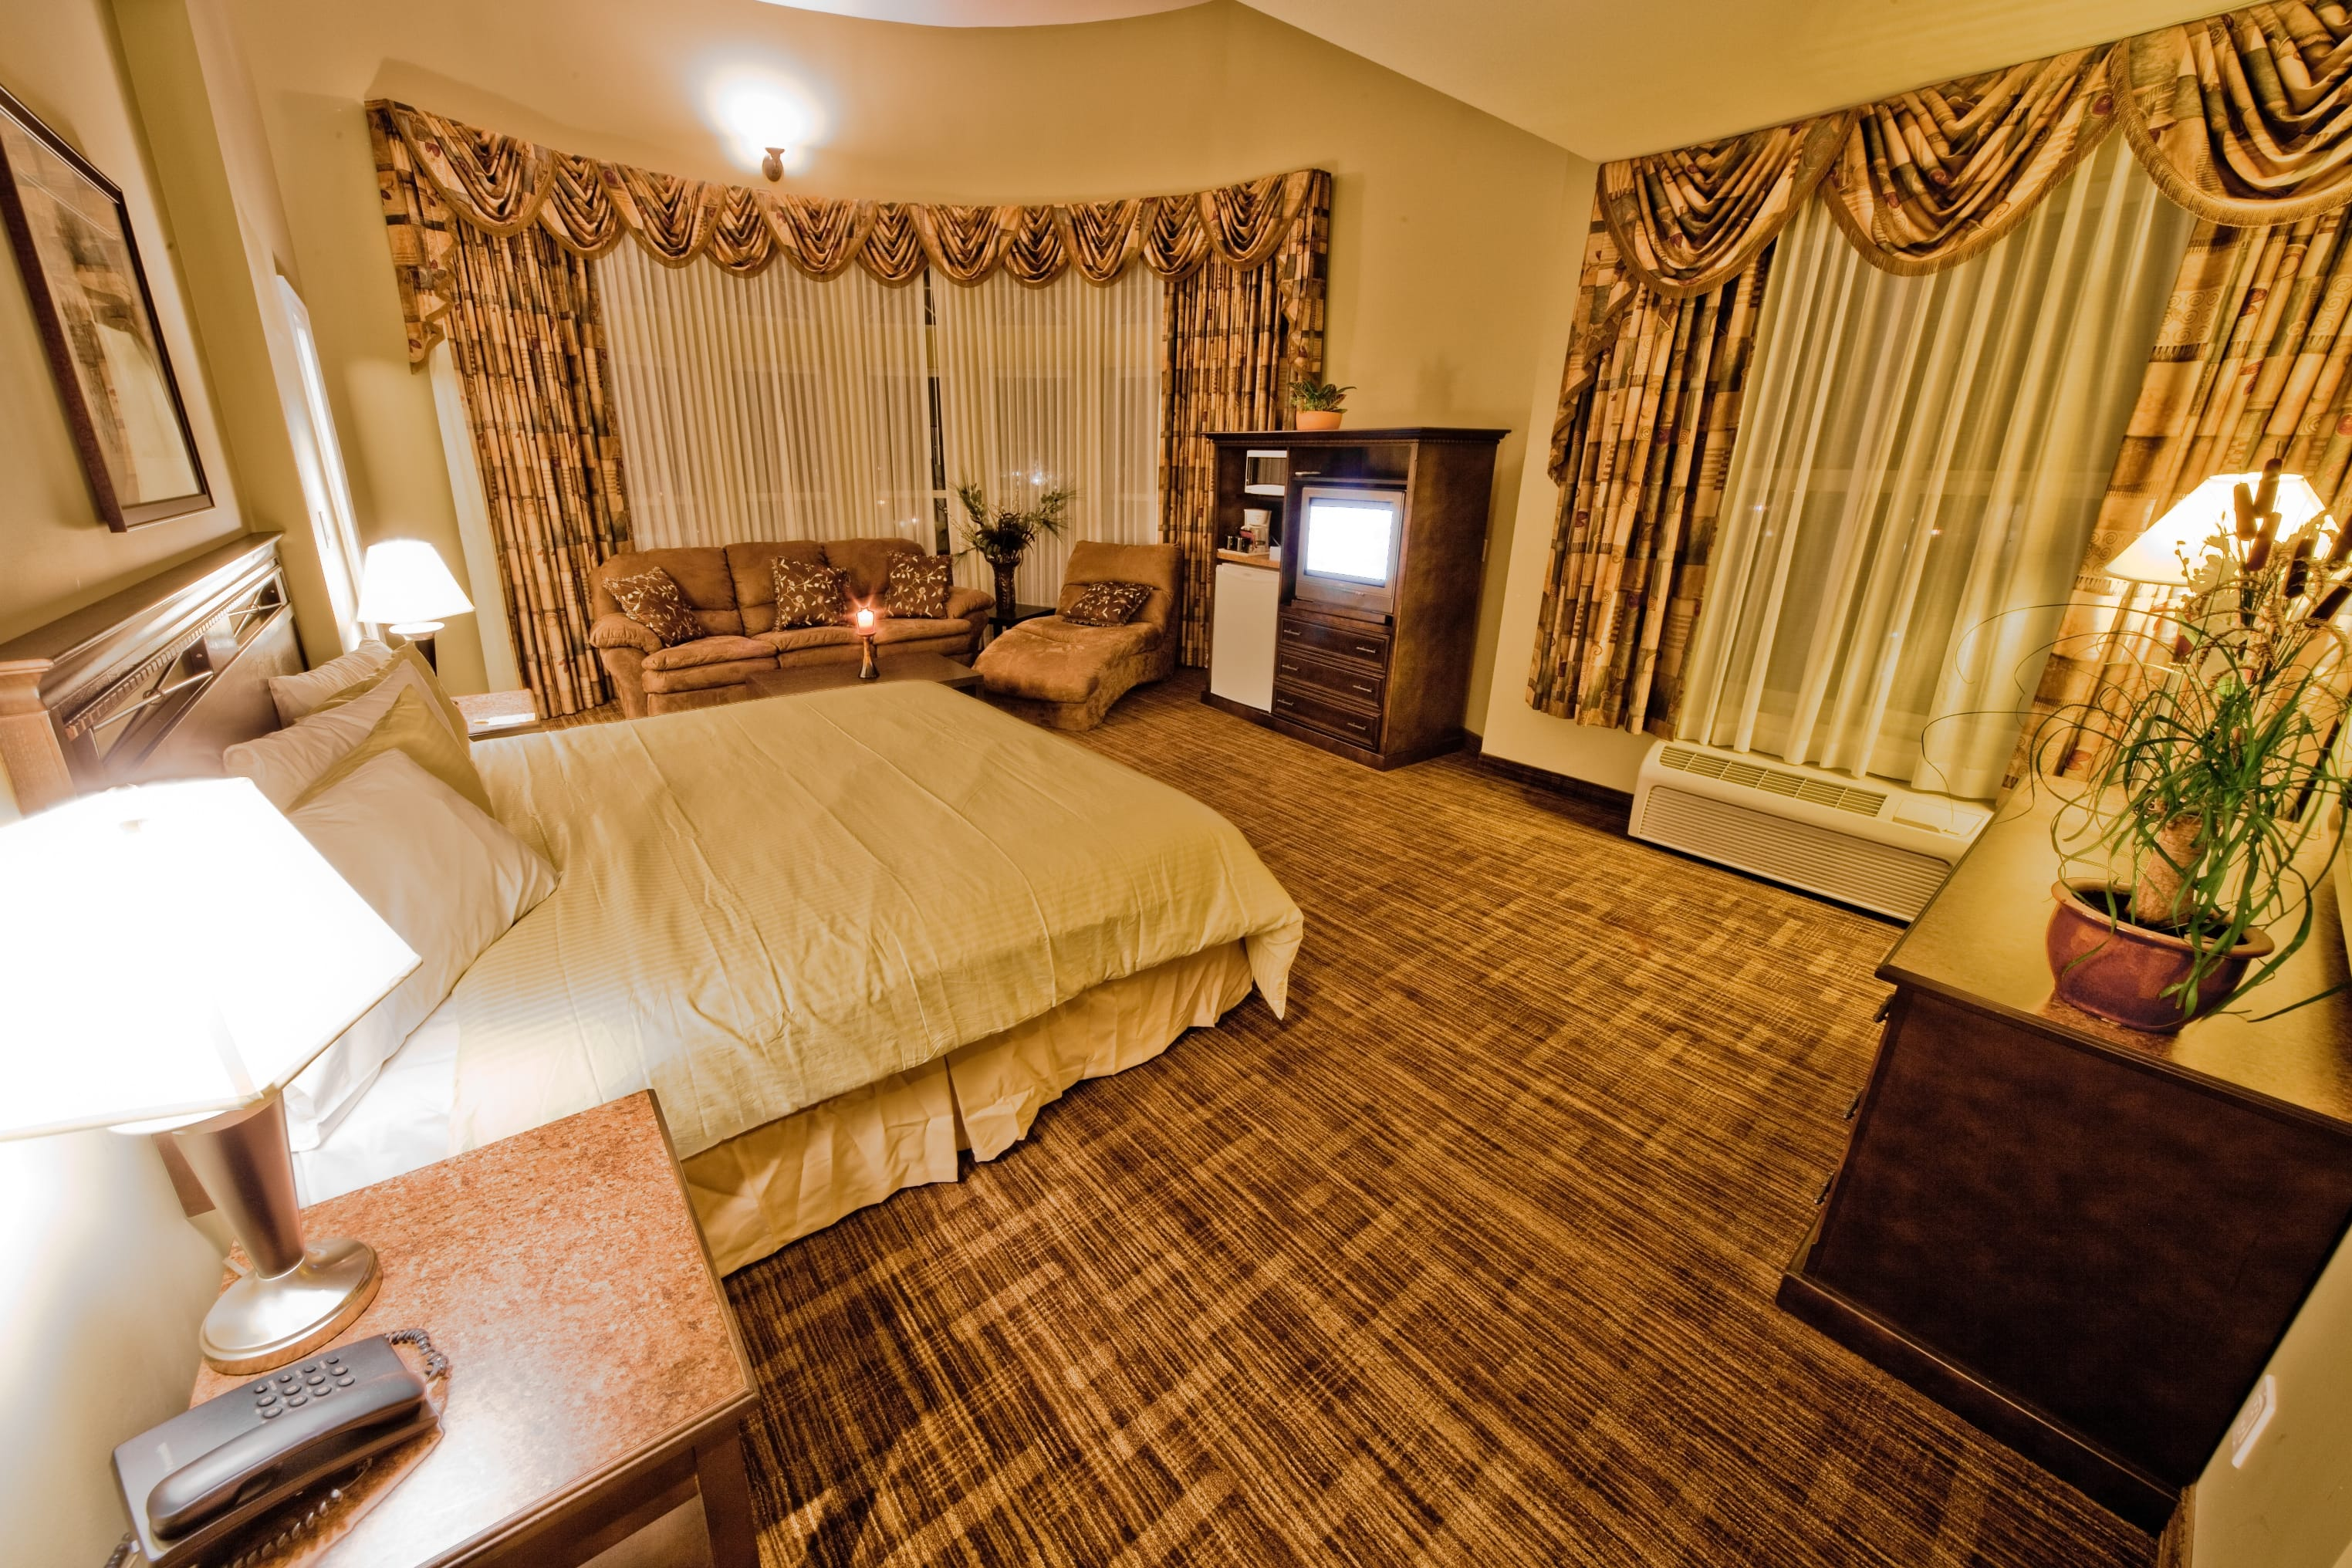 Guest room at the Days Inn Surrey in Surrey, British Columbia